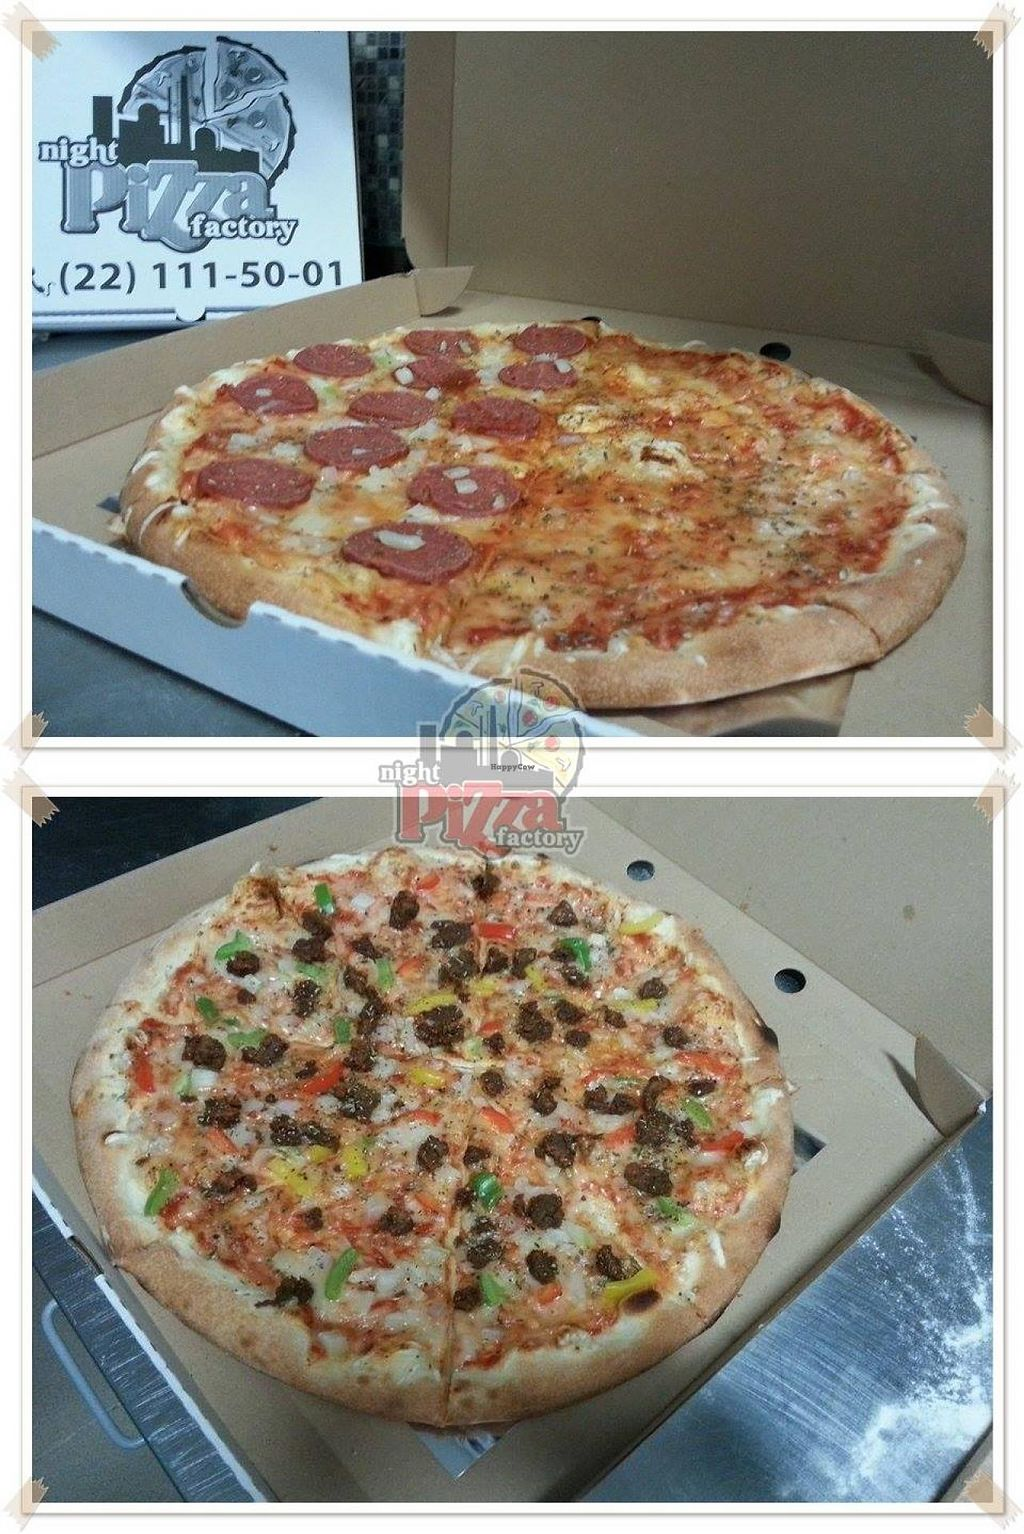 """Photo of Night Pizza Factory  by <a href=""""/members/profile/Vera%20Peres"""">Vera Peres</a> <br/>Vegan pizzas <br/> February 23, 2015  - <a href='/contact/abuse/image/53386/93889'>Report</a>"""